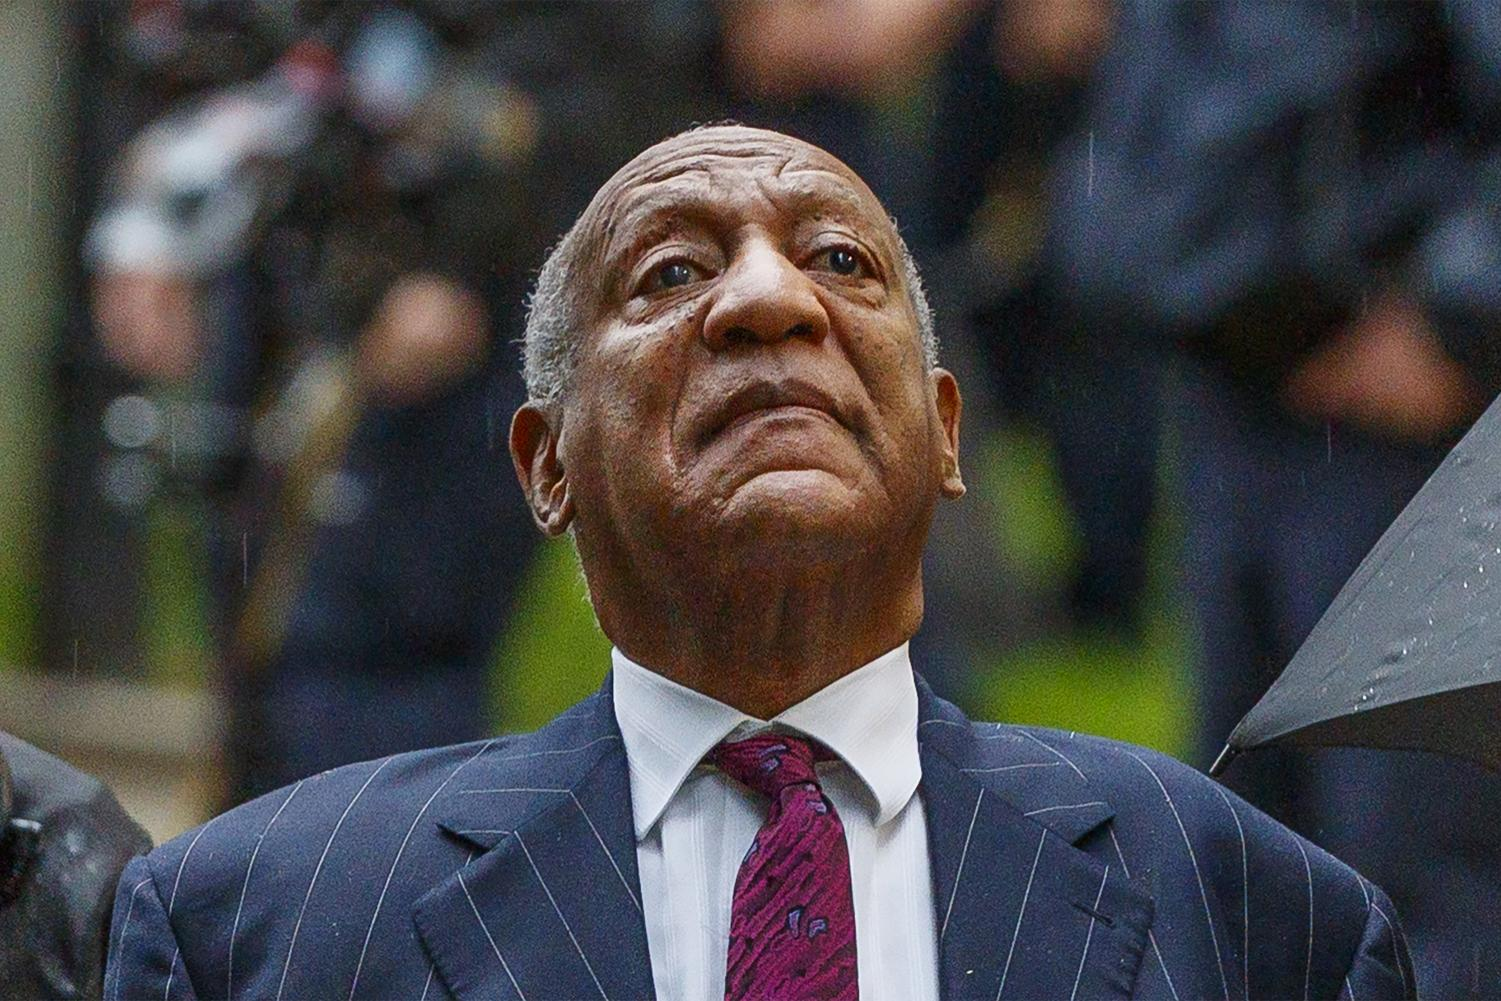 Bill Cosby raises his head toward the sky after a supporter told him to